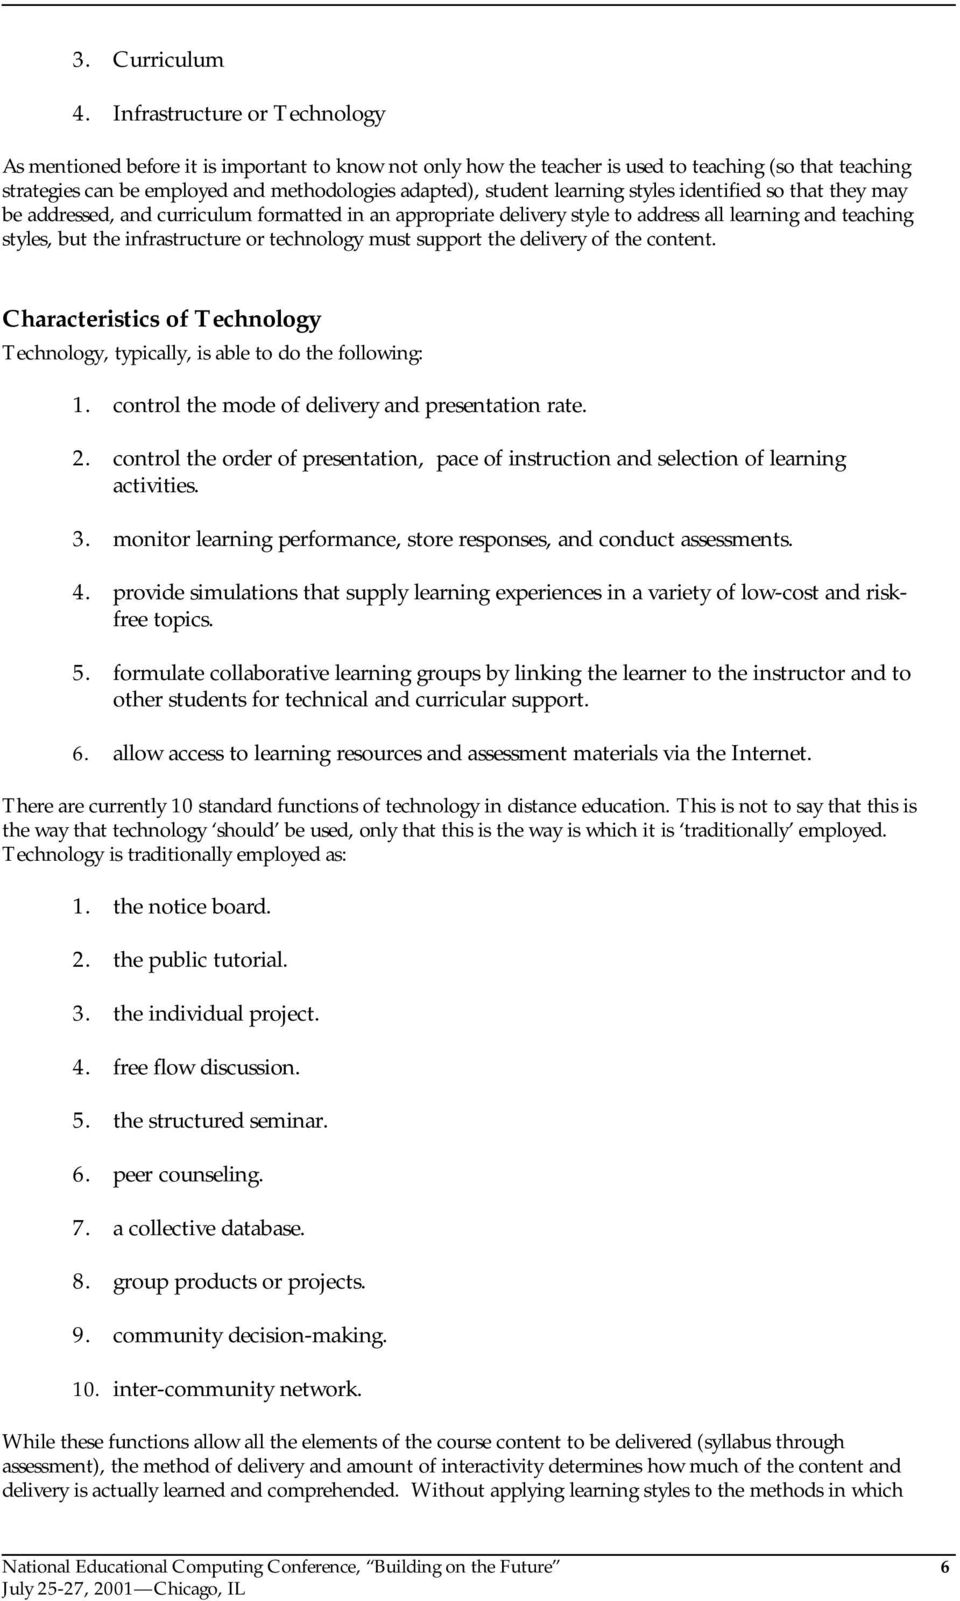 learning styles identified so that they may be addressed, and curriculum formatted in an appropriate delivery style to address all learning and teaching styles, but the infrastructure or technology